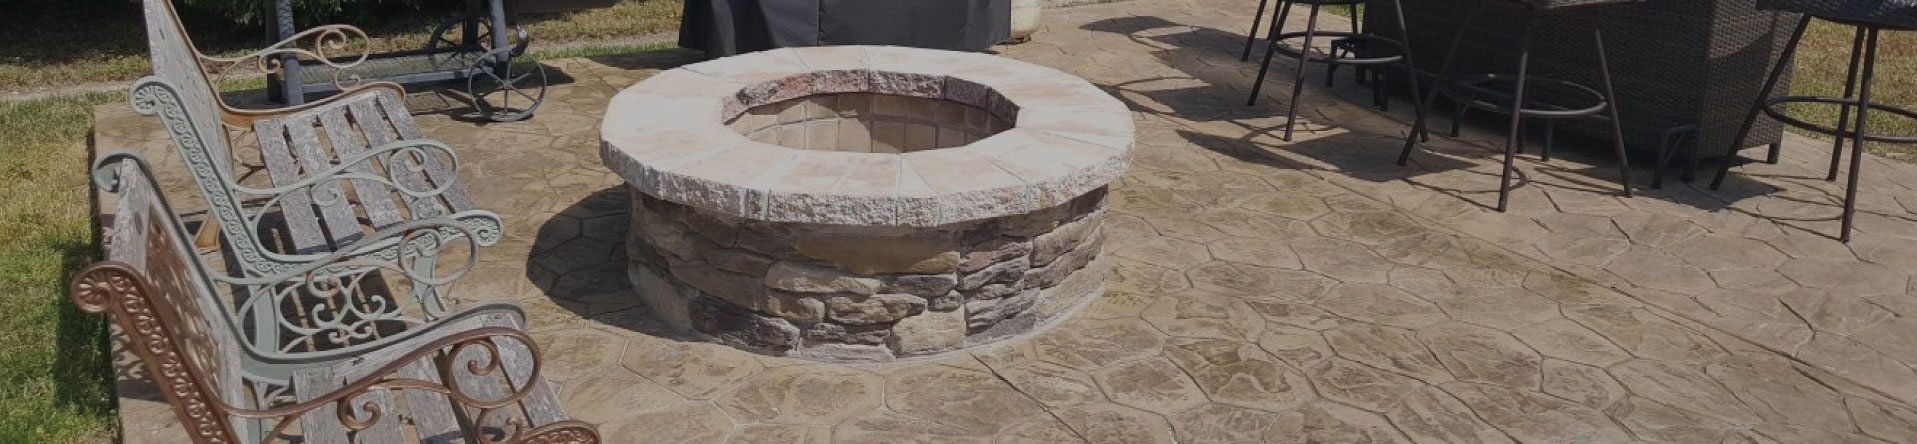 concrete fire pits virginia beach